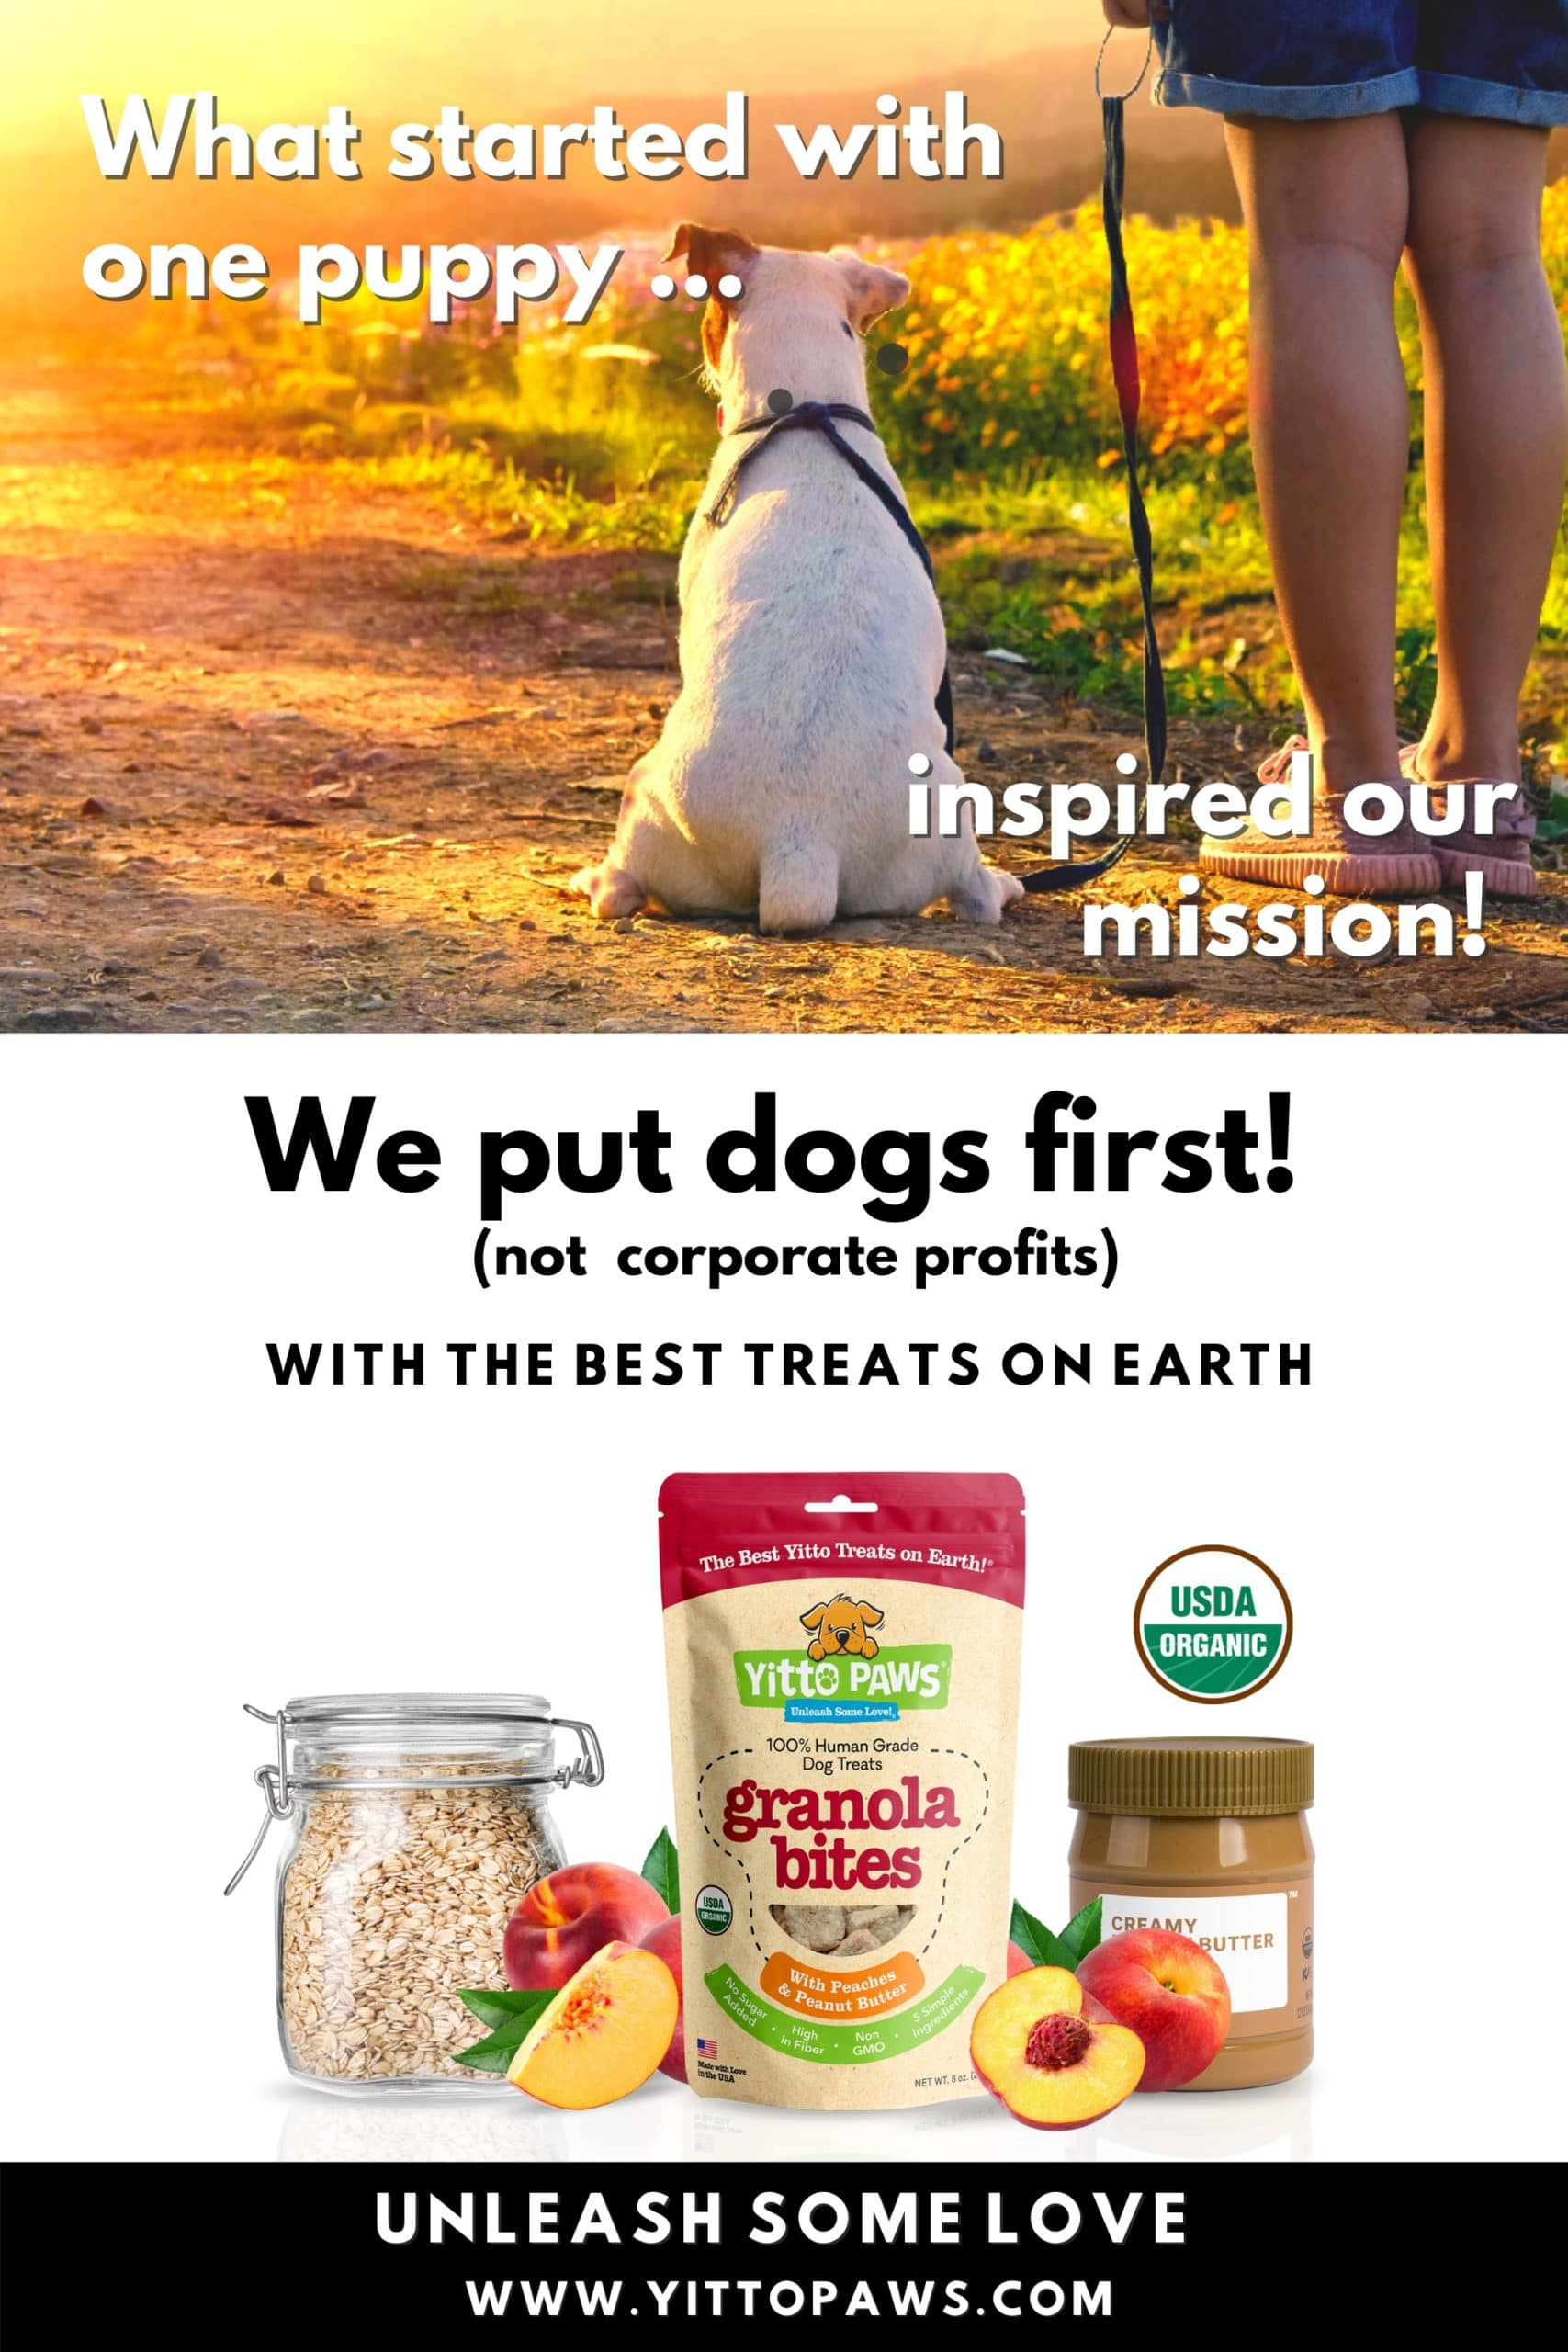 Putting Dogs First means prioritizing the health and happiness of our dogs over corporate profits.